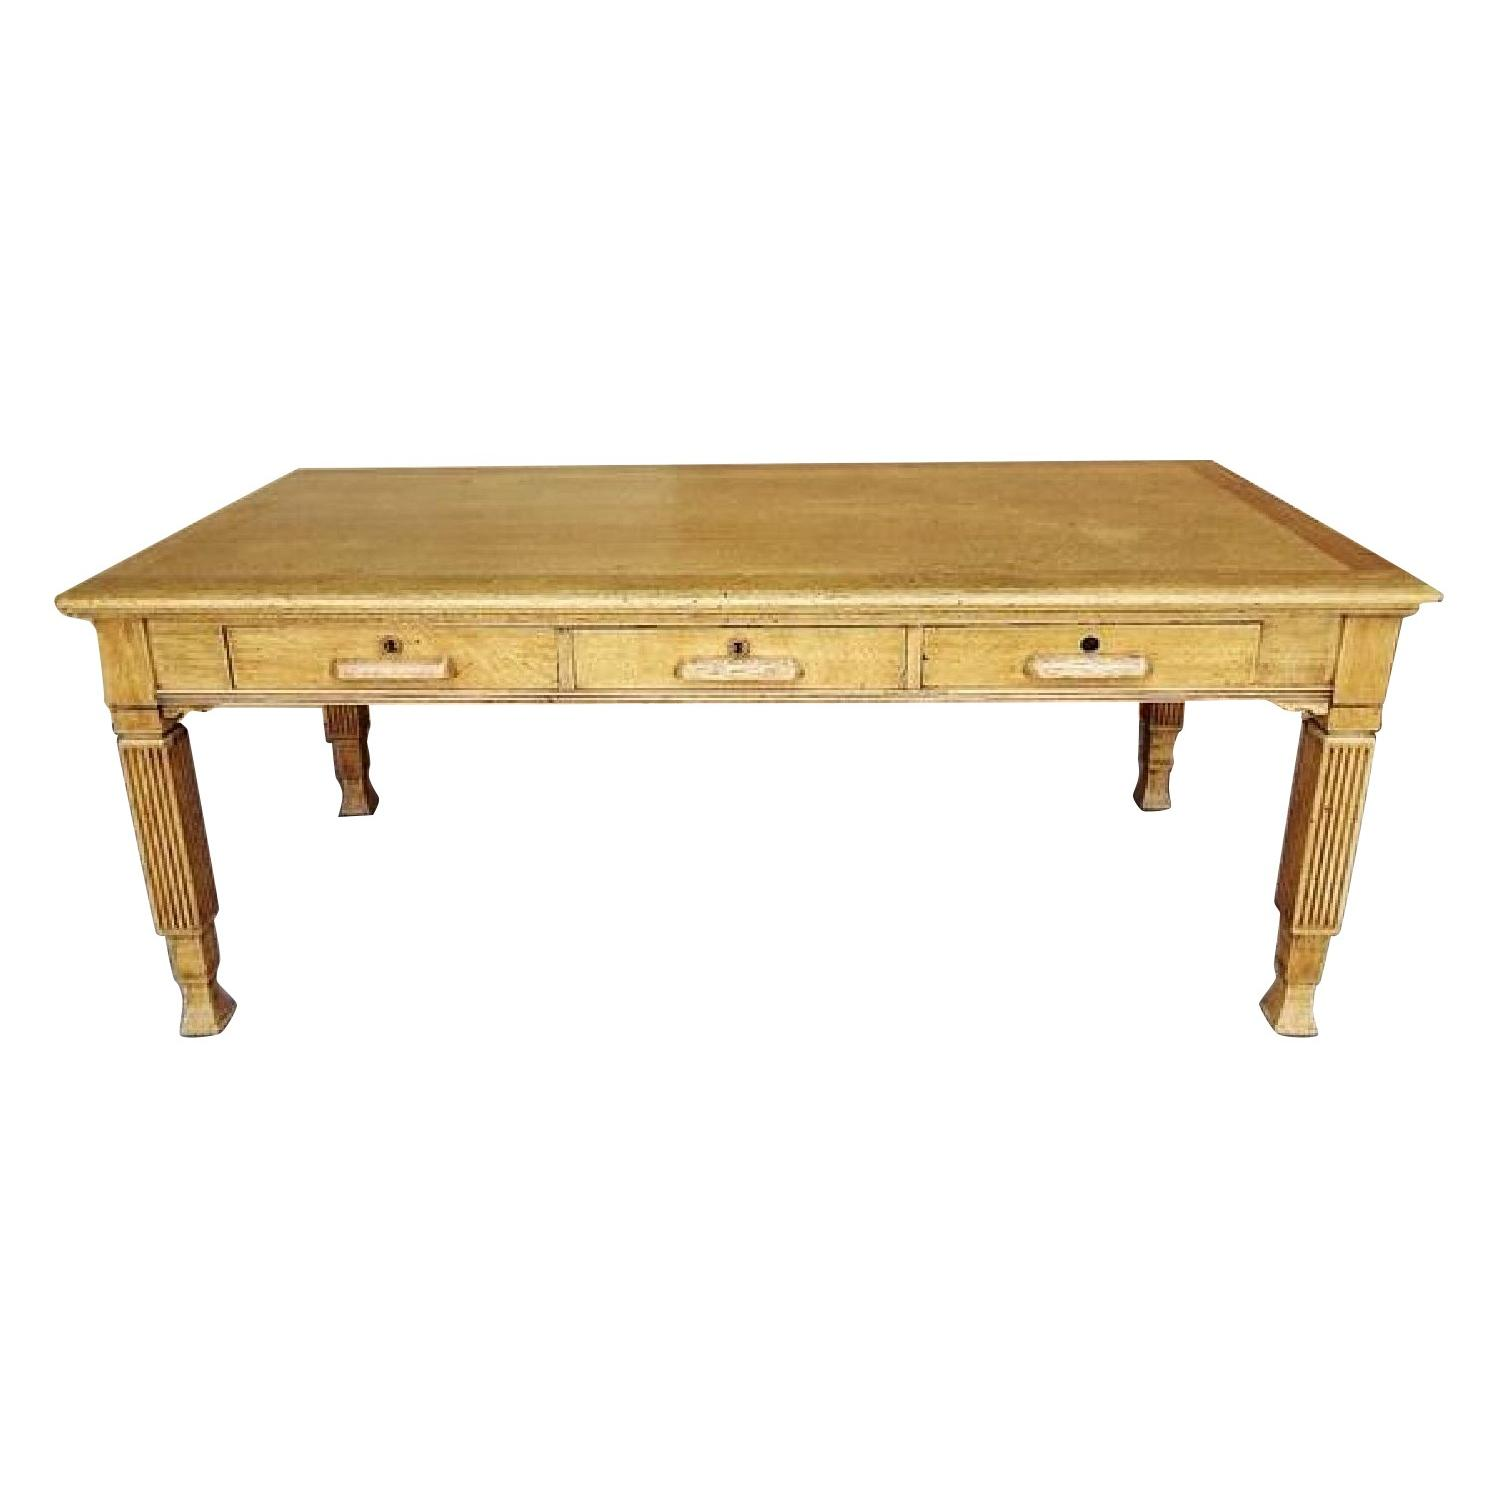 Vintage French Neoclassic Country Antique Oak Dining table